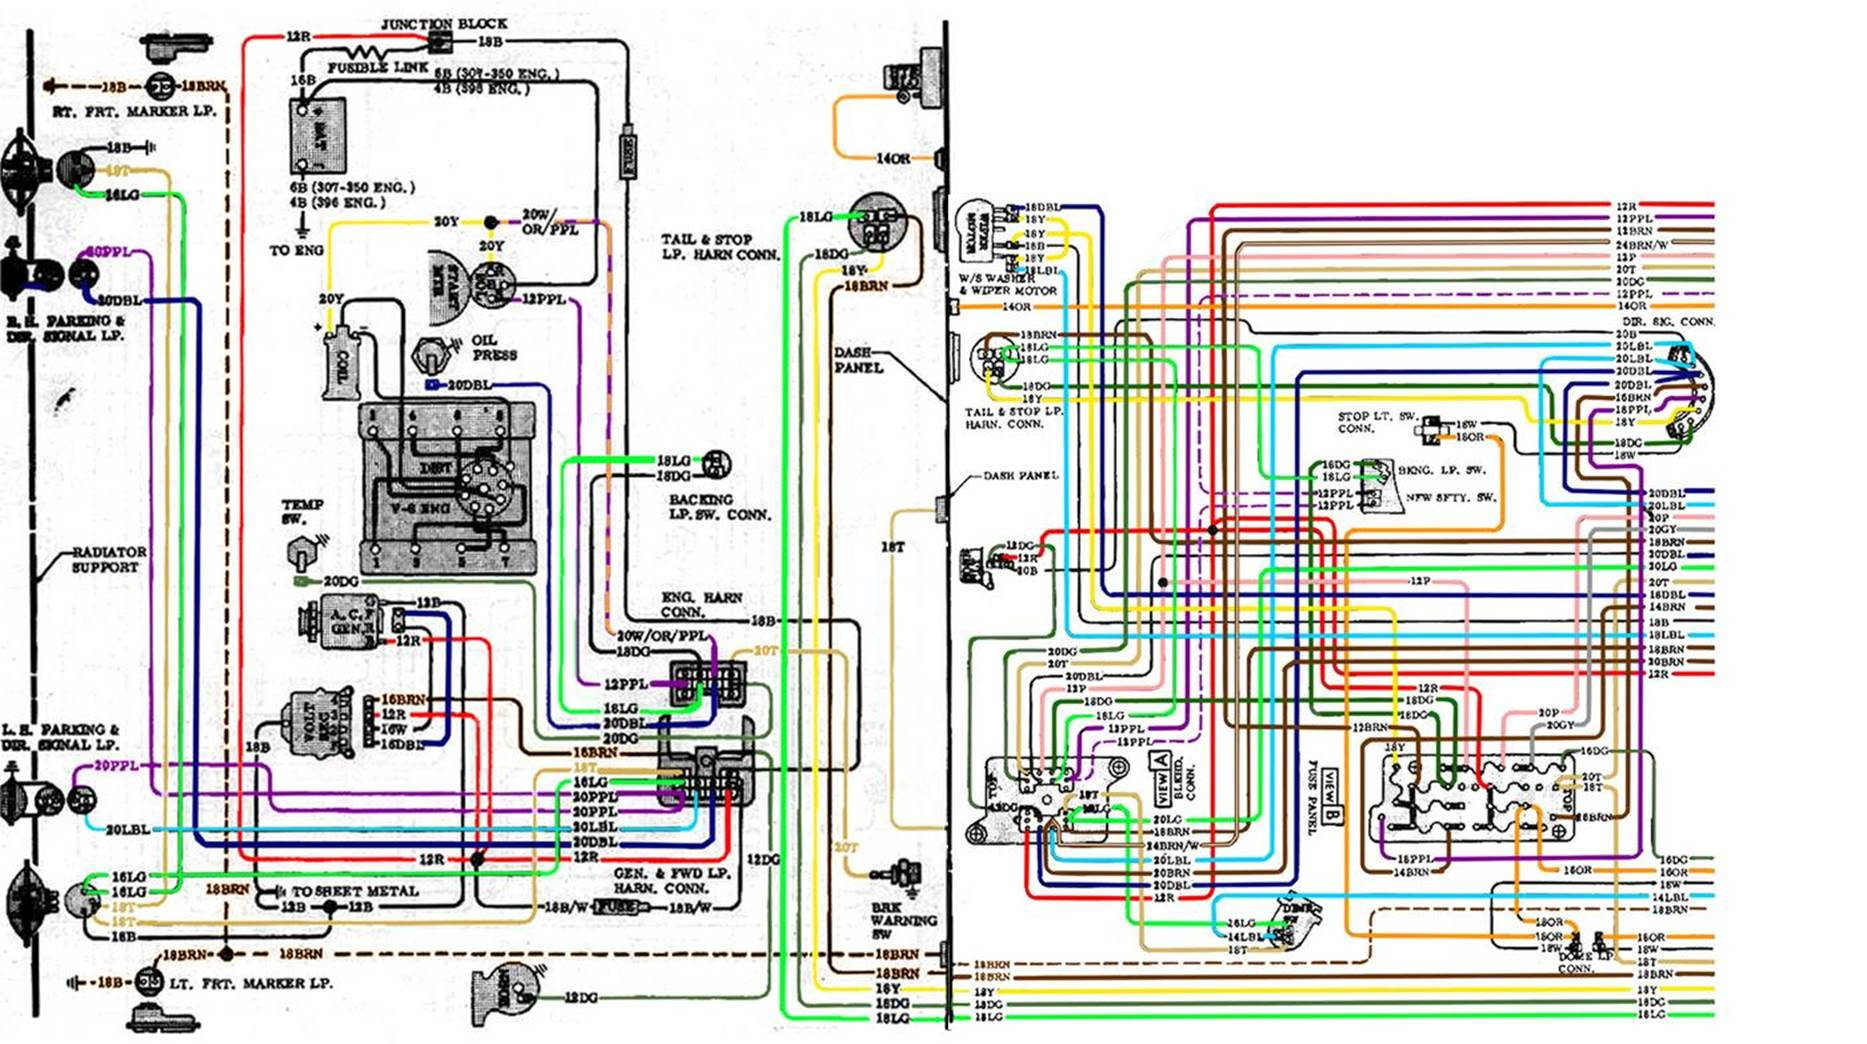 image002 67 72 chevy wiring diagram 1970 chevelle dash wiring diagram at suagrazia.org